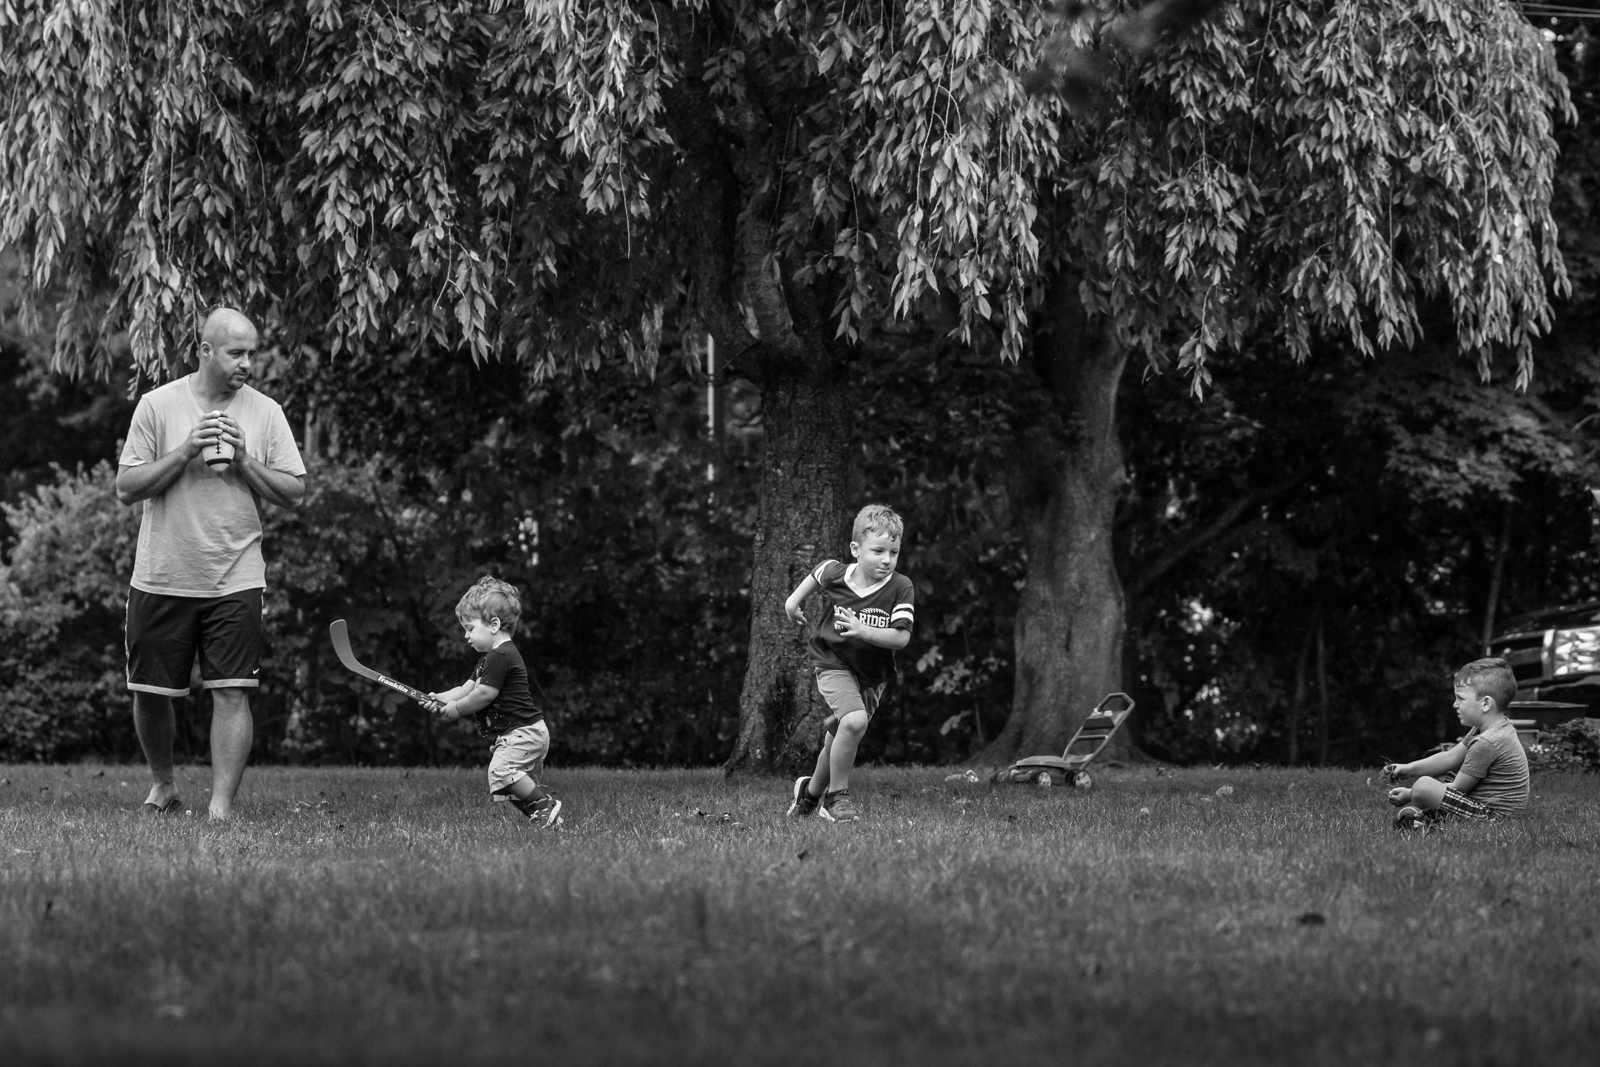 Man gets ready to throw football to his three sons